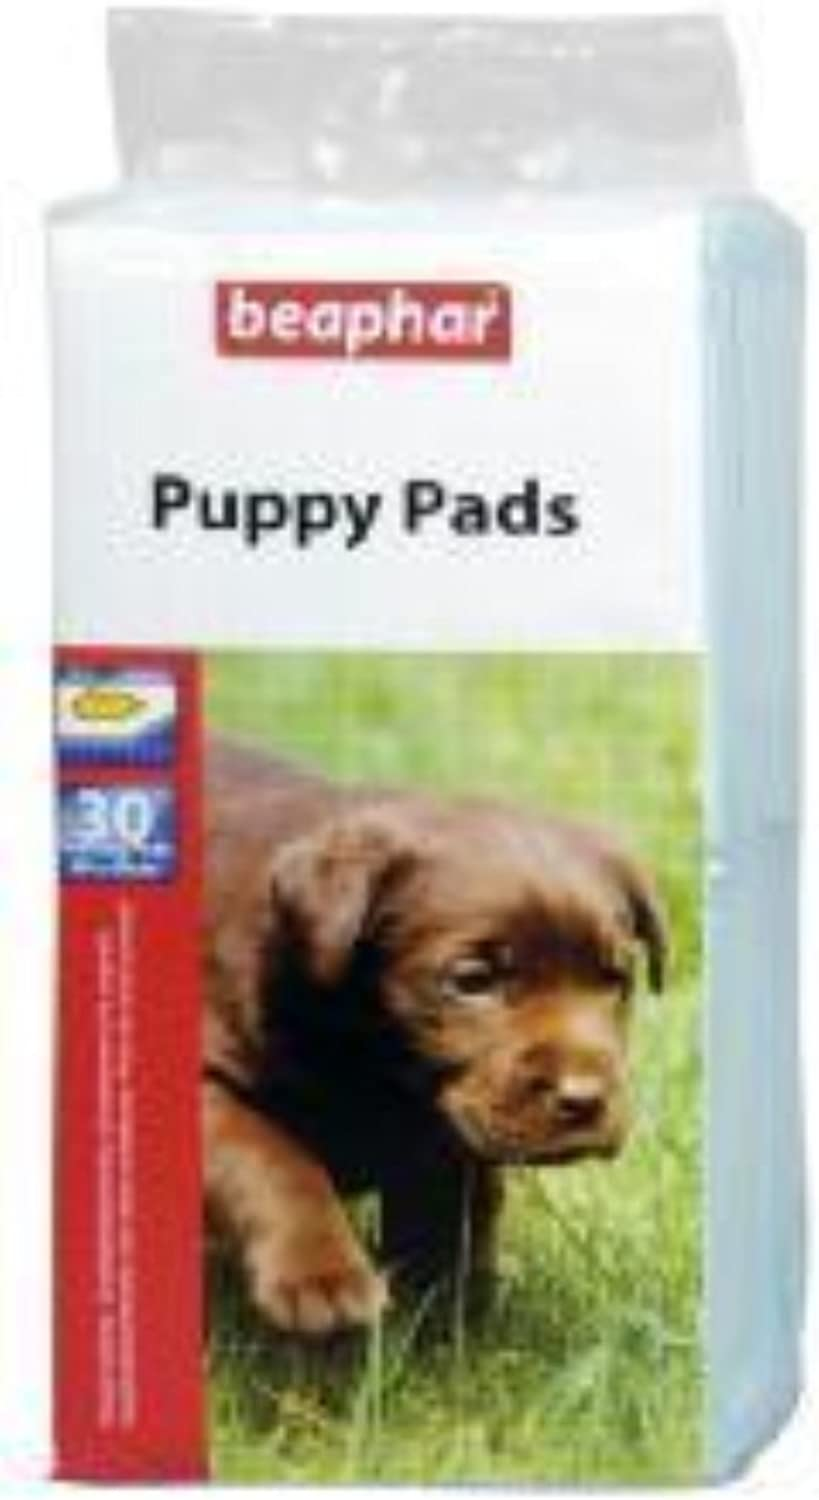 Beaphar Puppy Training Pads x 30 1300g  Bulk Deal of 6x